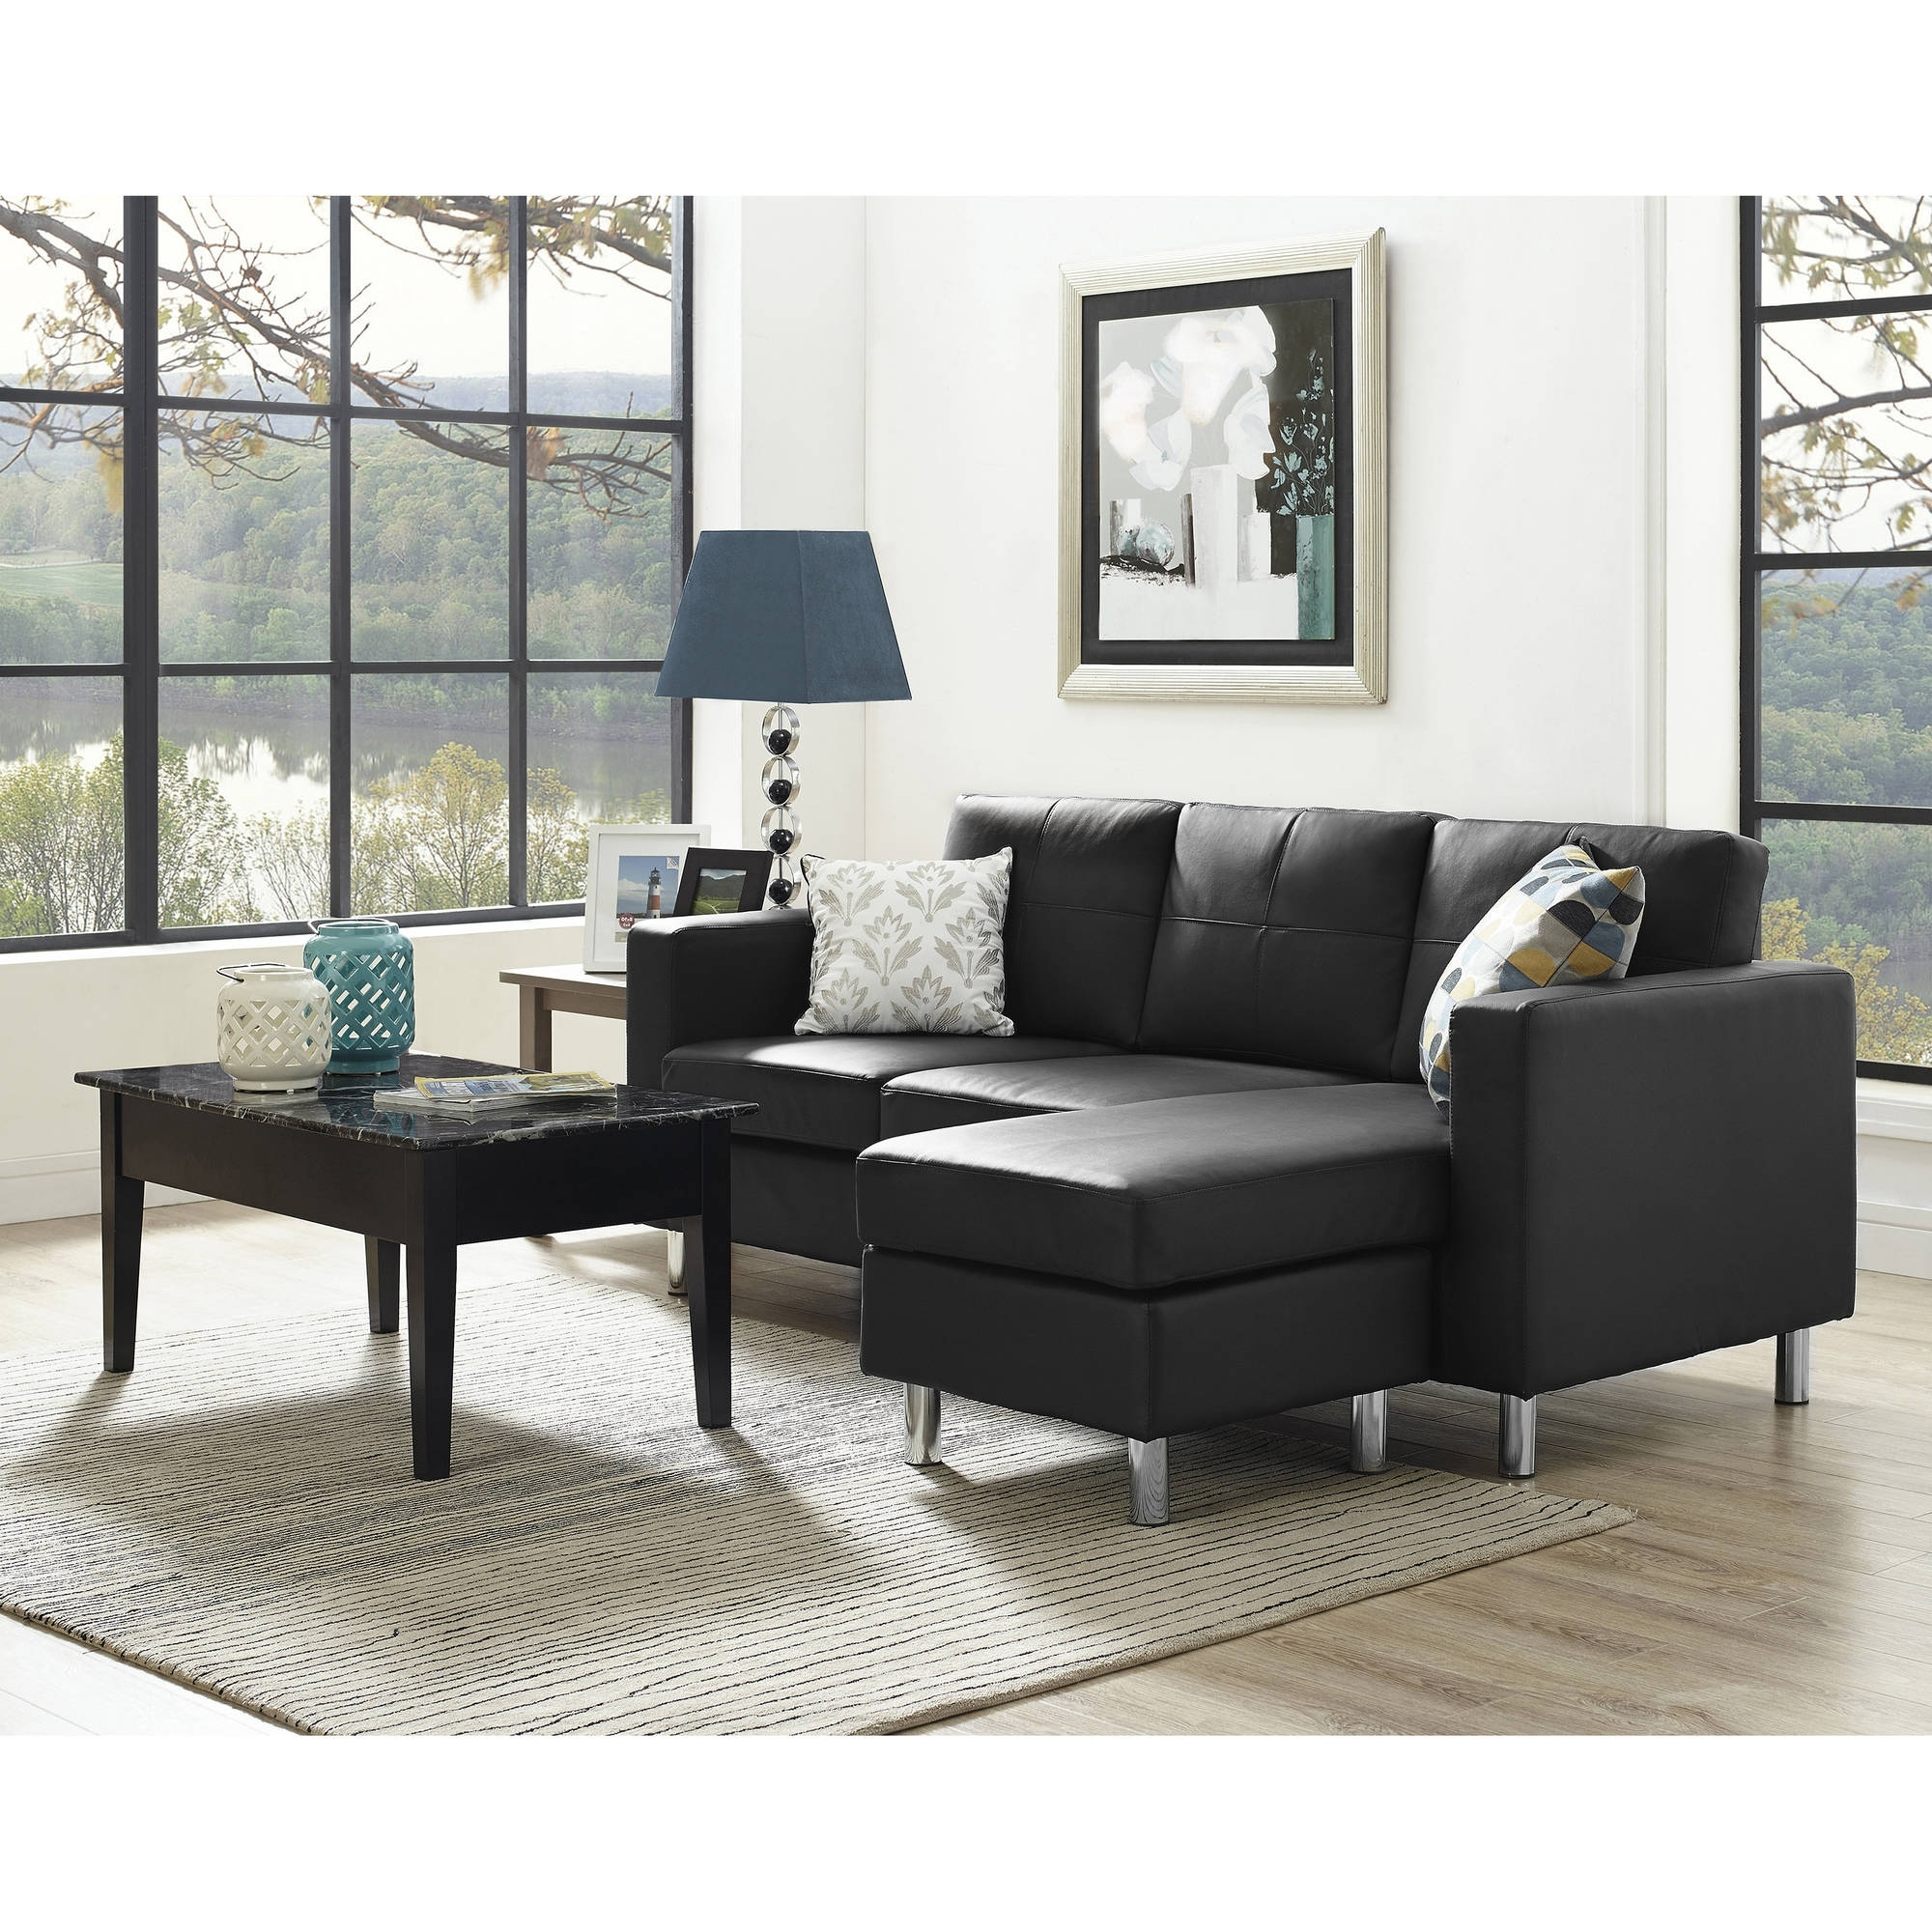 Affordable Couches (View 13 of 15)